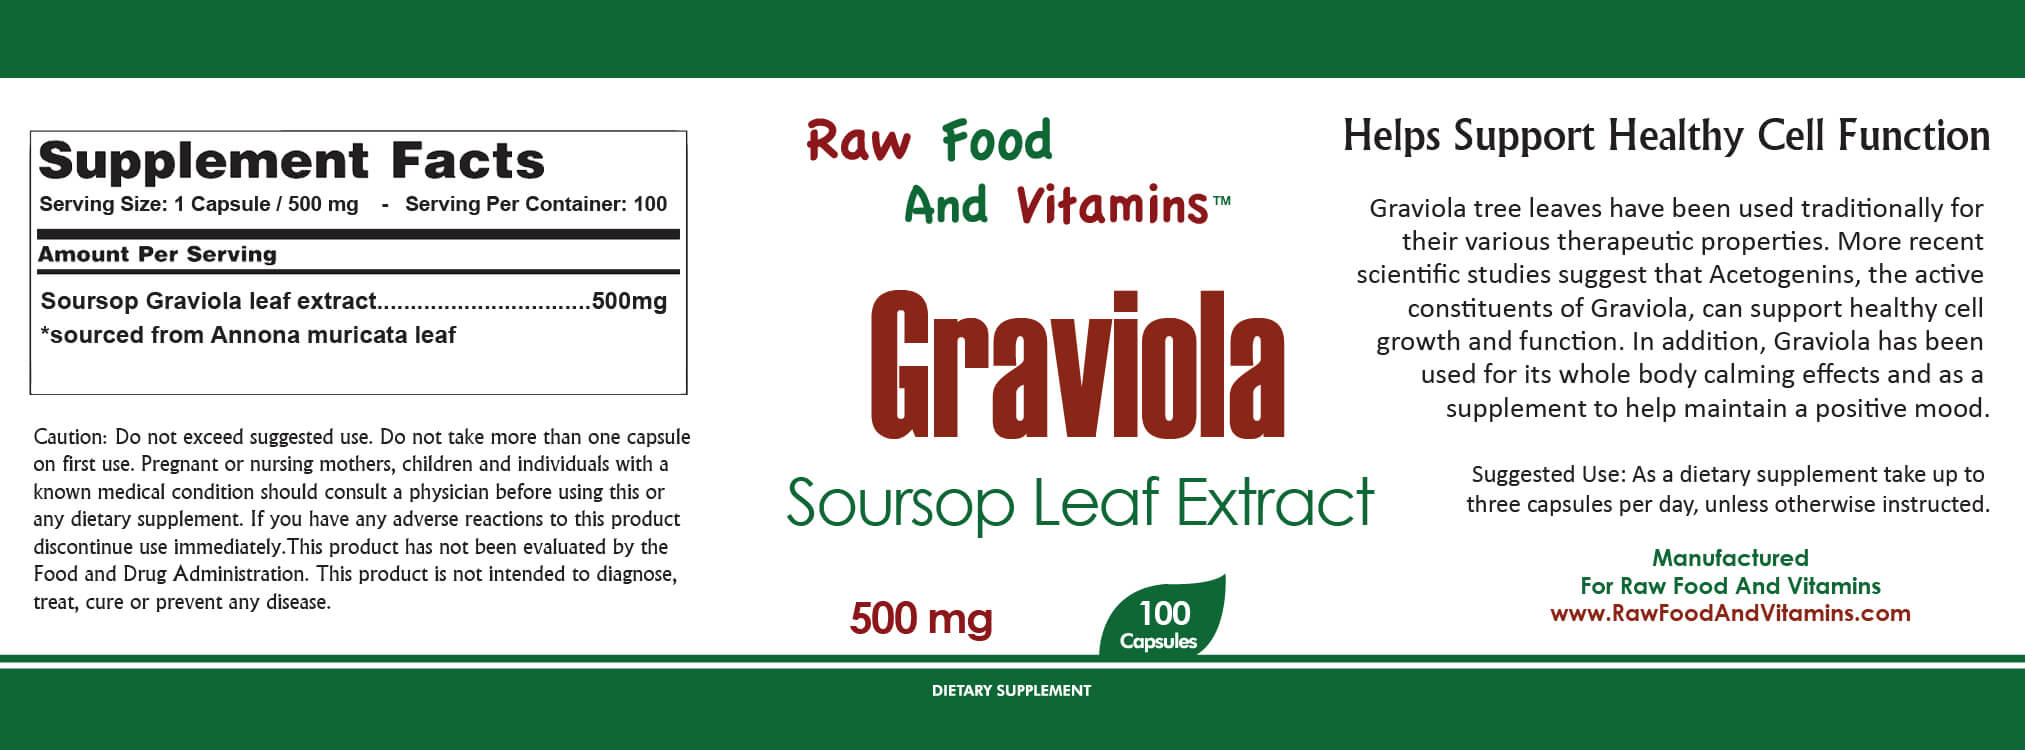 antioxidative property of soursop leaf extract Healing properties pure graviola (or soursop) for the best quality soursop graviola leaves gmo free graviola soursop leaves with glycerin extract.